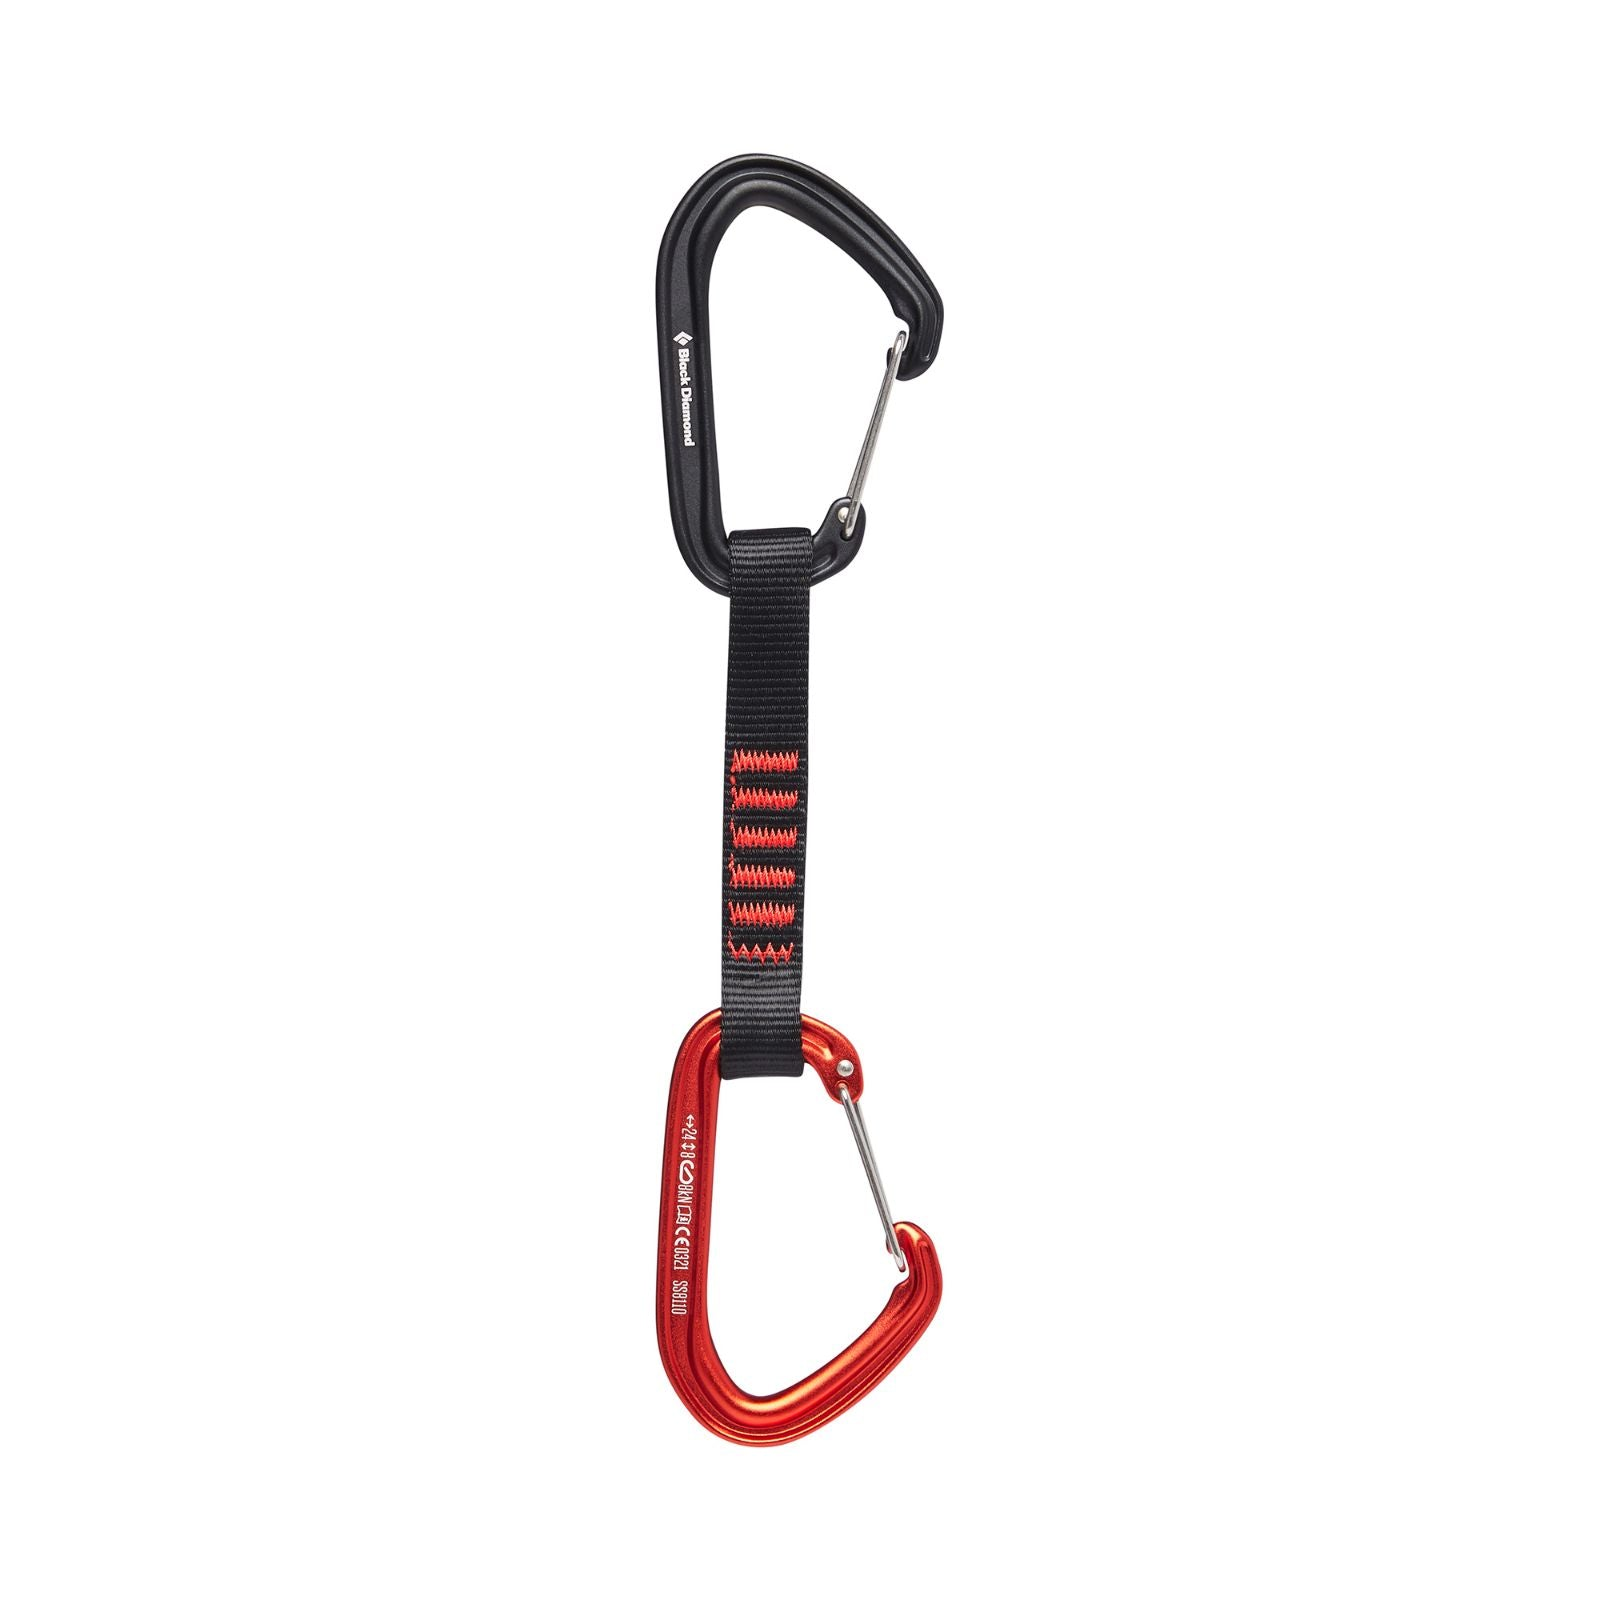 Black Diamond's lightweight and highly adaptable quickdraw features the updated HotWire wiregate carabiners.